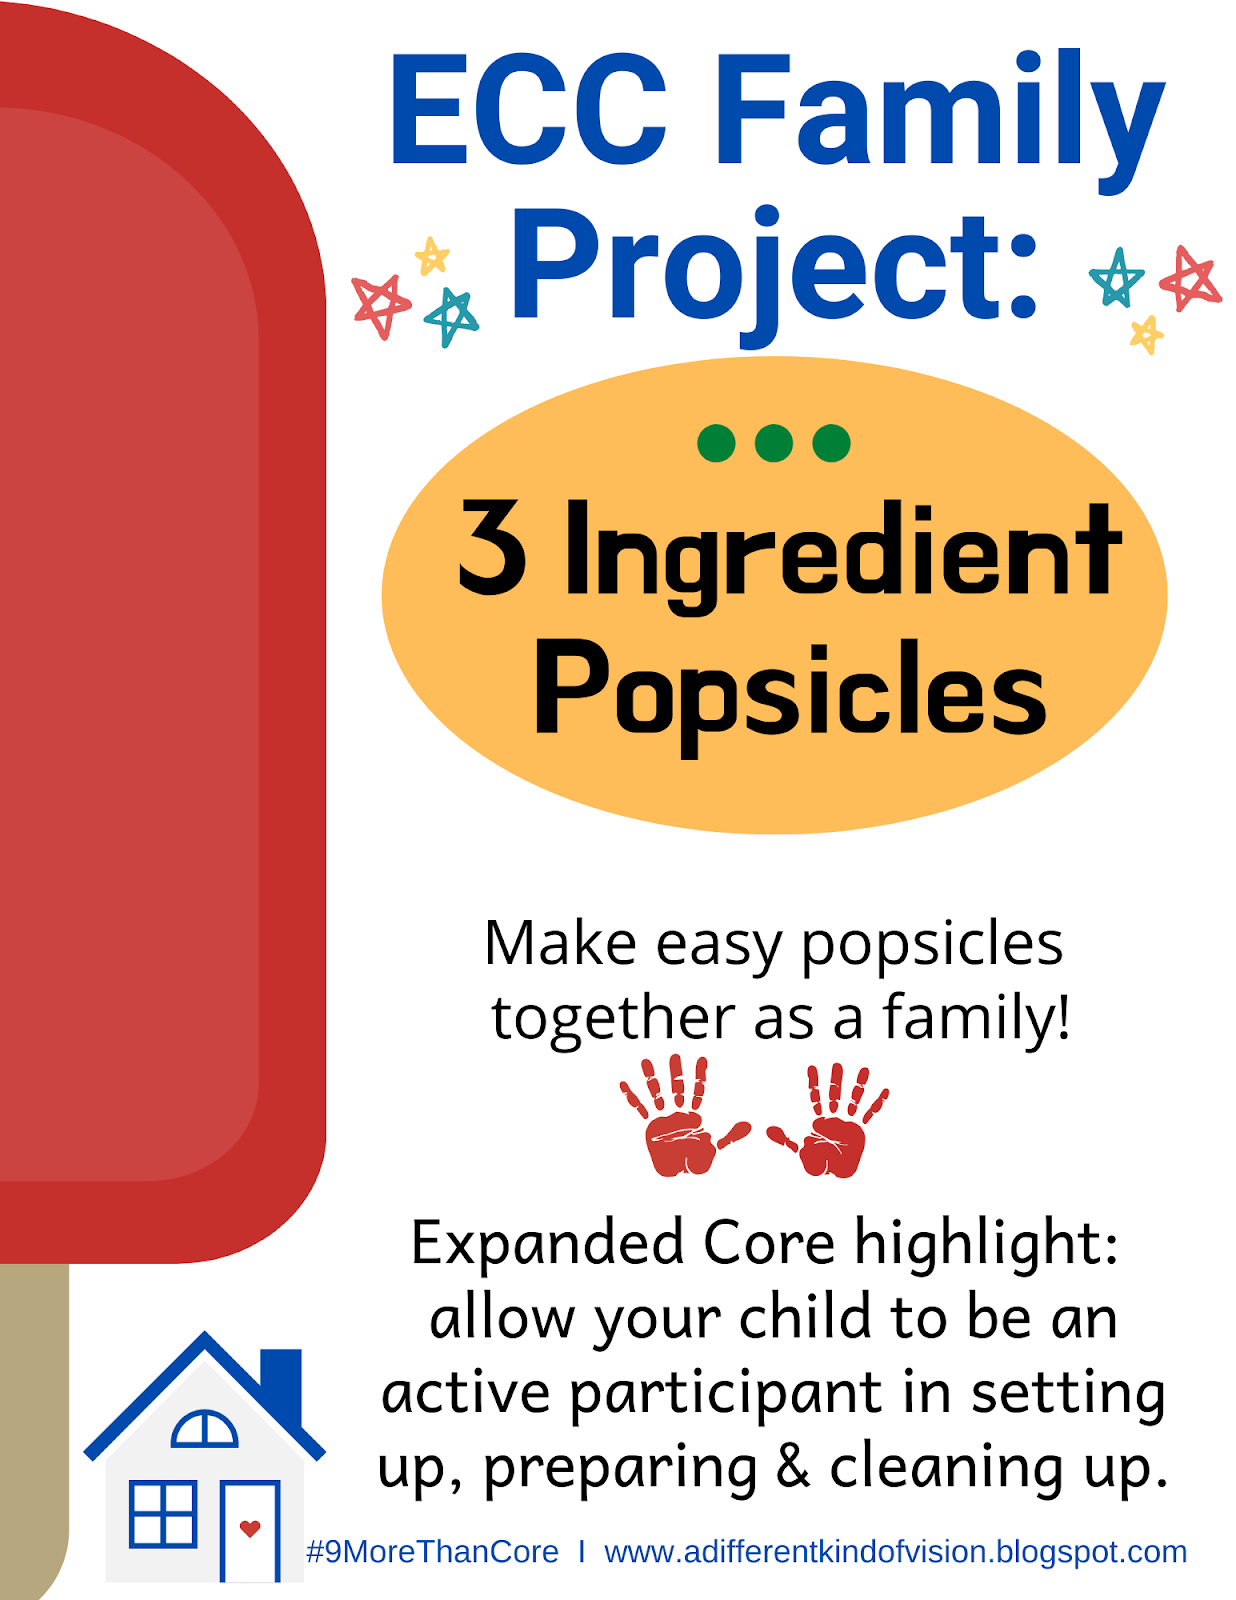 Image that says ECC Family Project: Make 3 ingredient popsicles